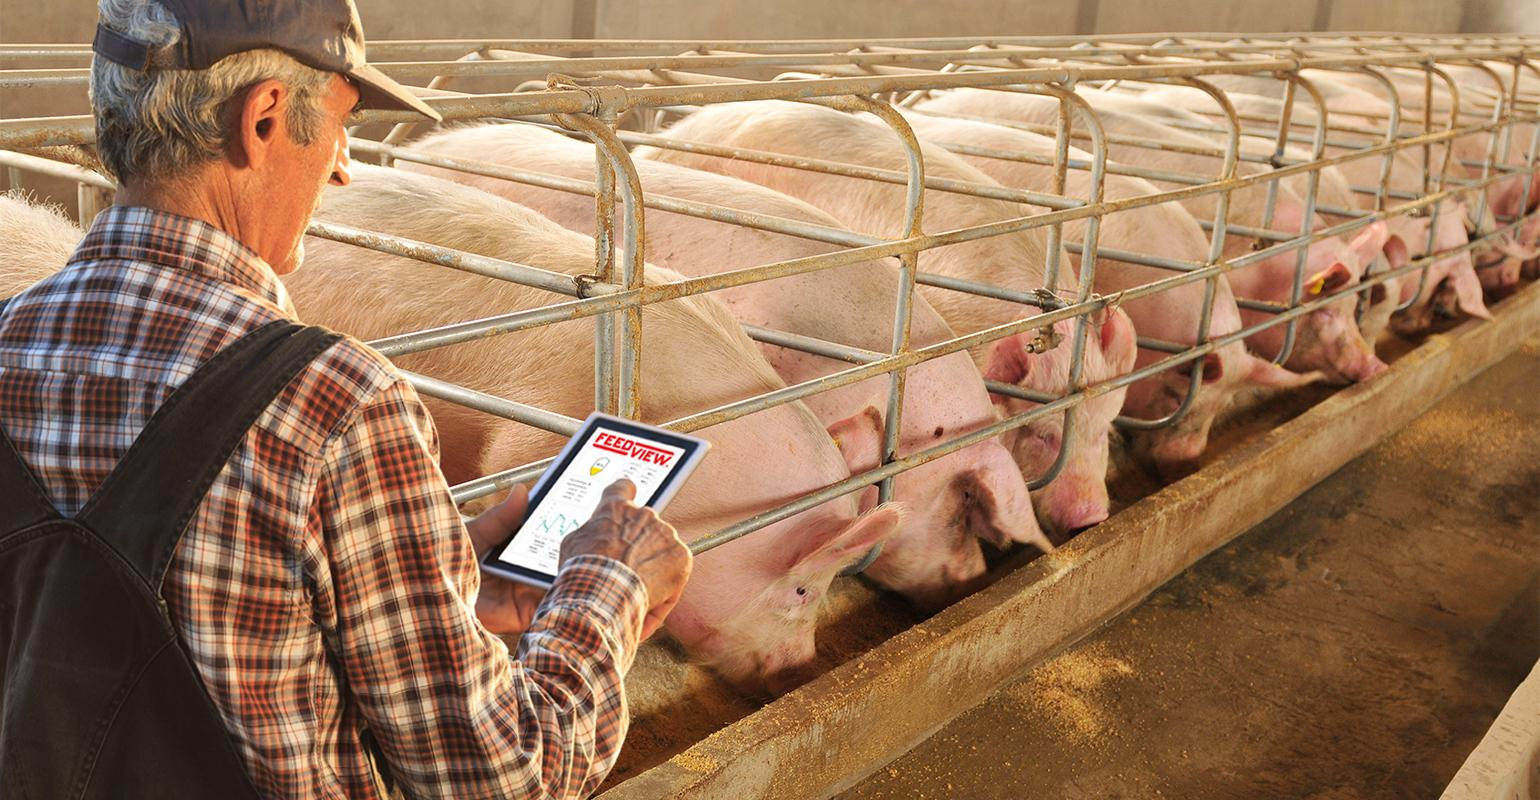 Sensors and software to simplify feed inventory | National Hog Farmer